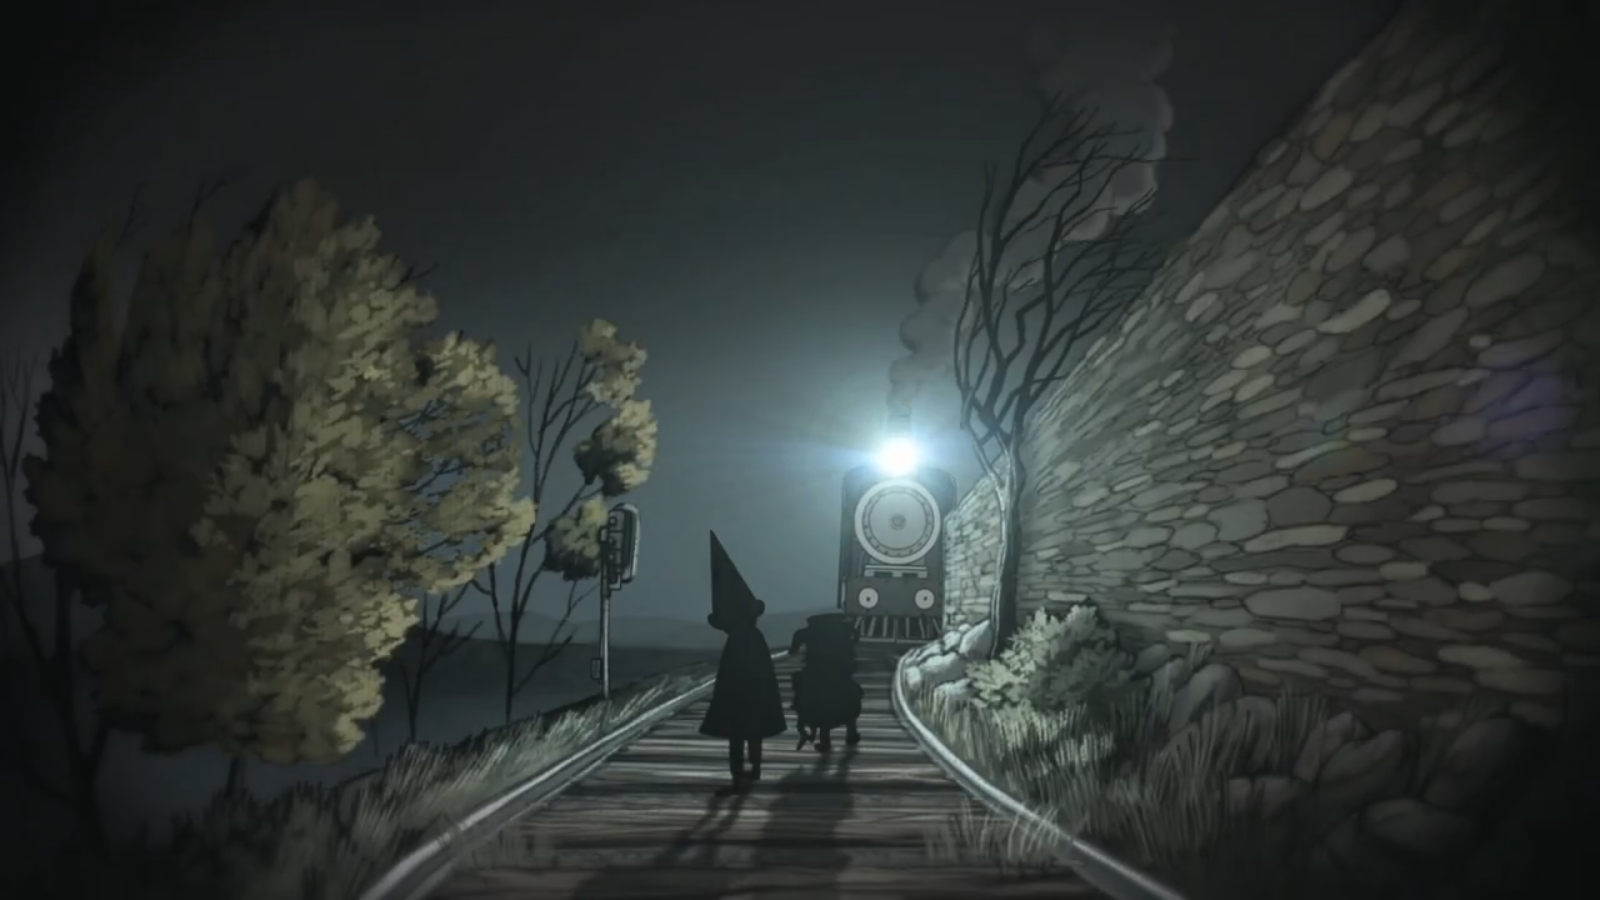 Over the garden wall wallpaper wallpapersafari Wallpapers for the wall